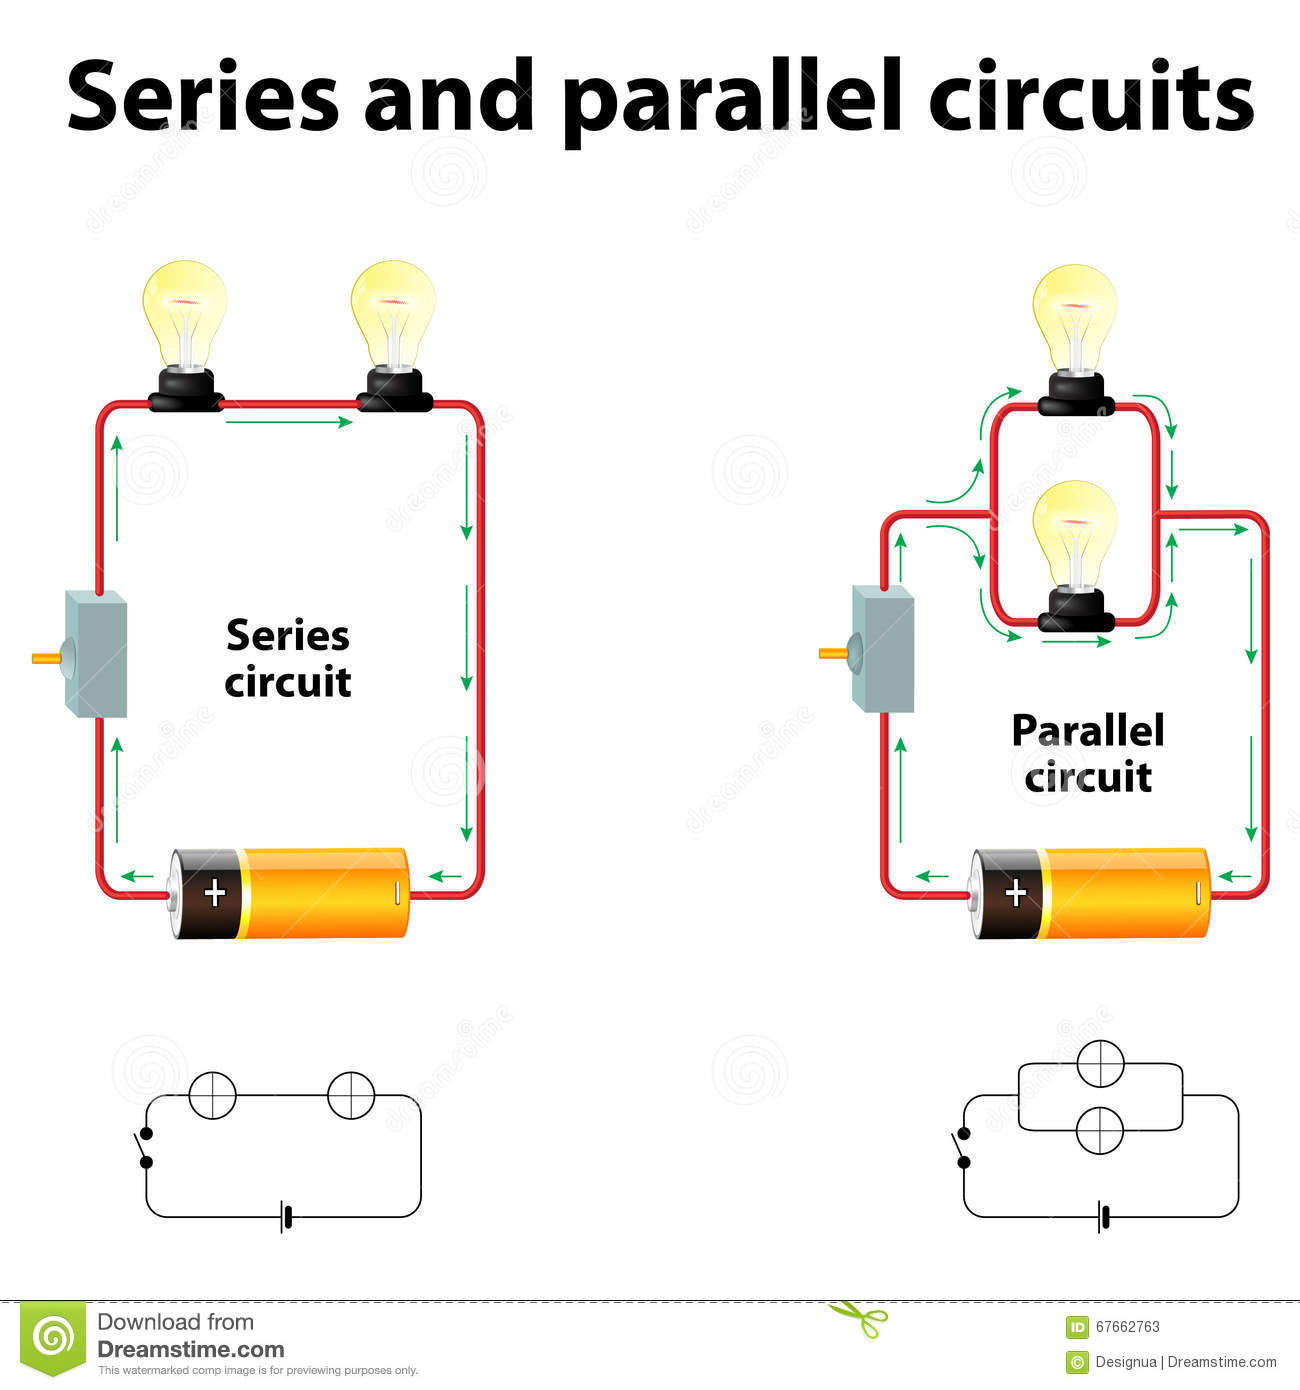 Series-parallel-circuits-connected.jpg